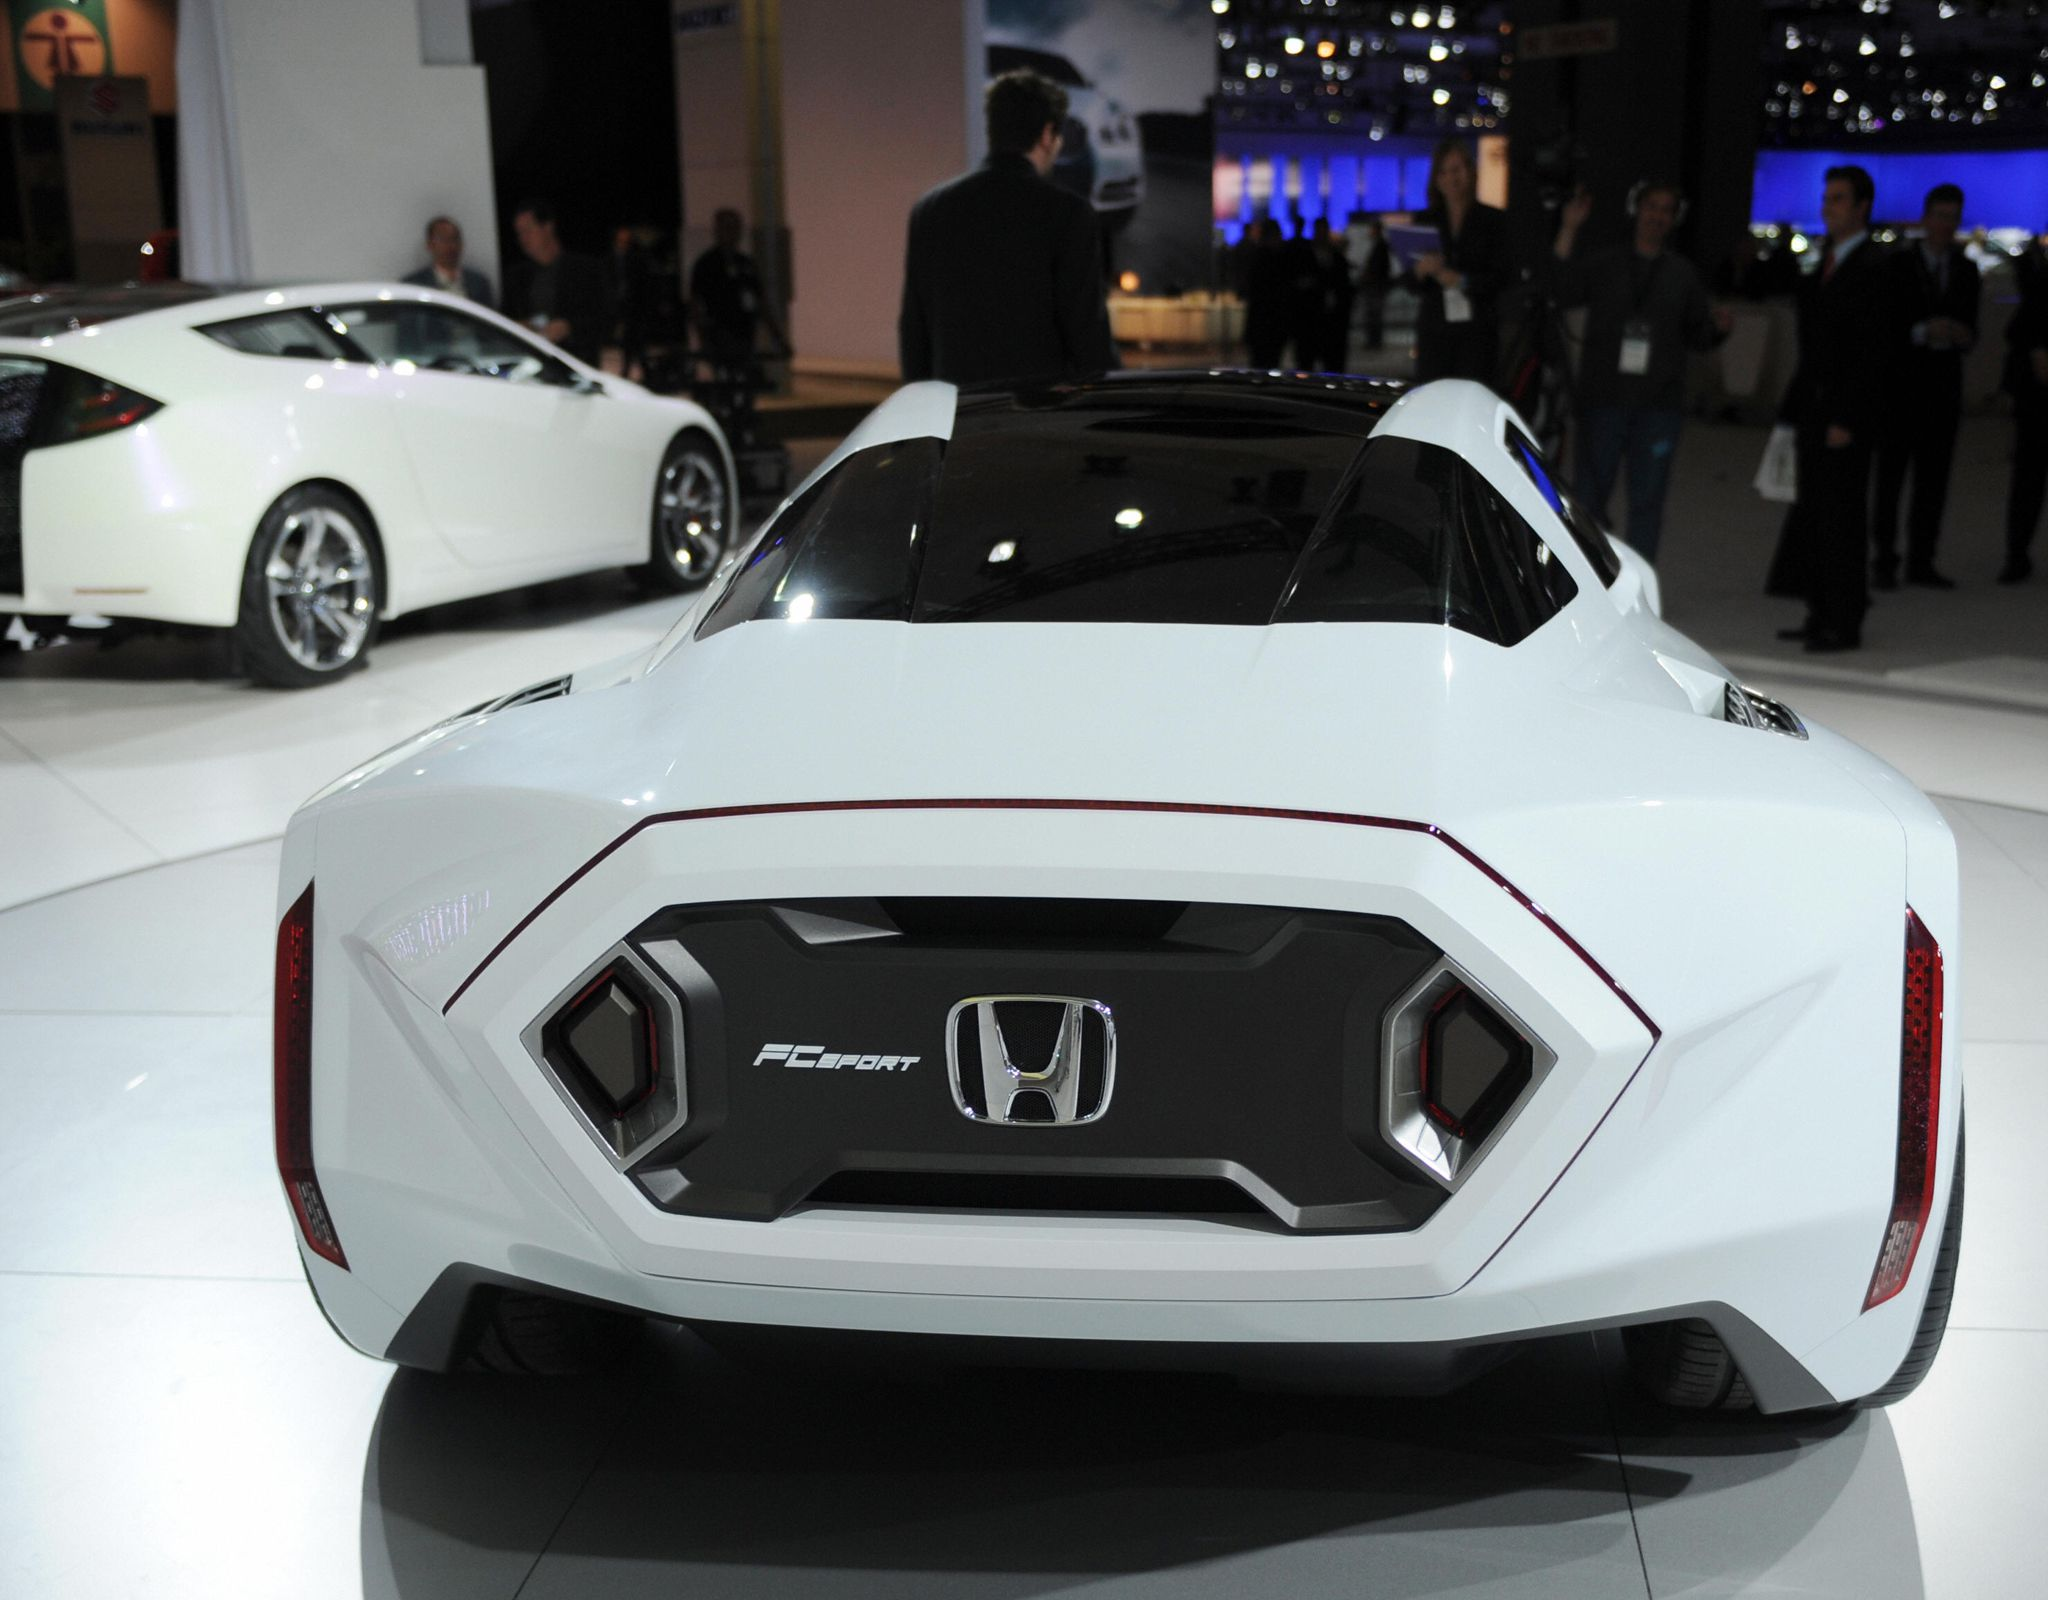 The Honda FC Sport fuel cell concept car